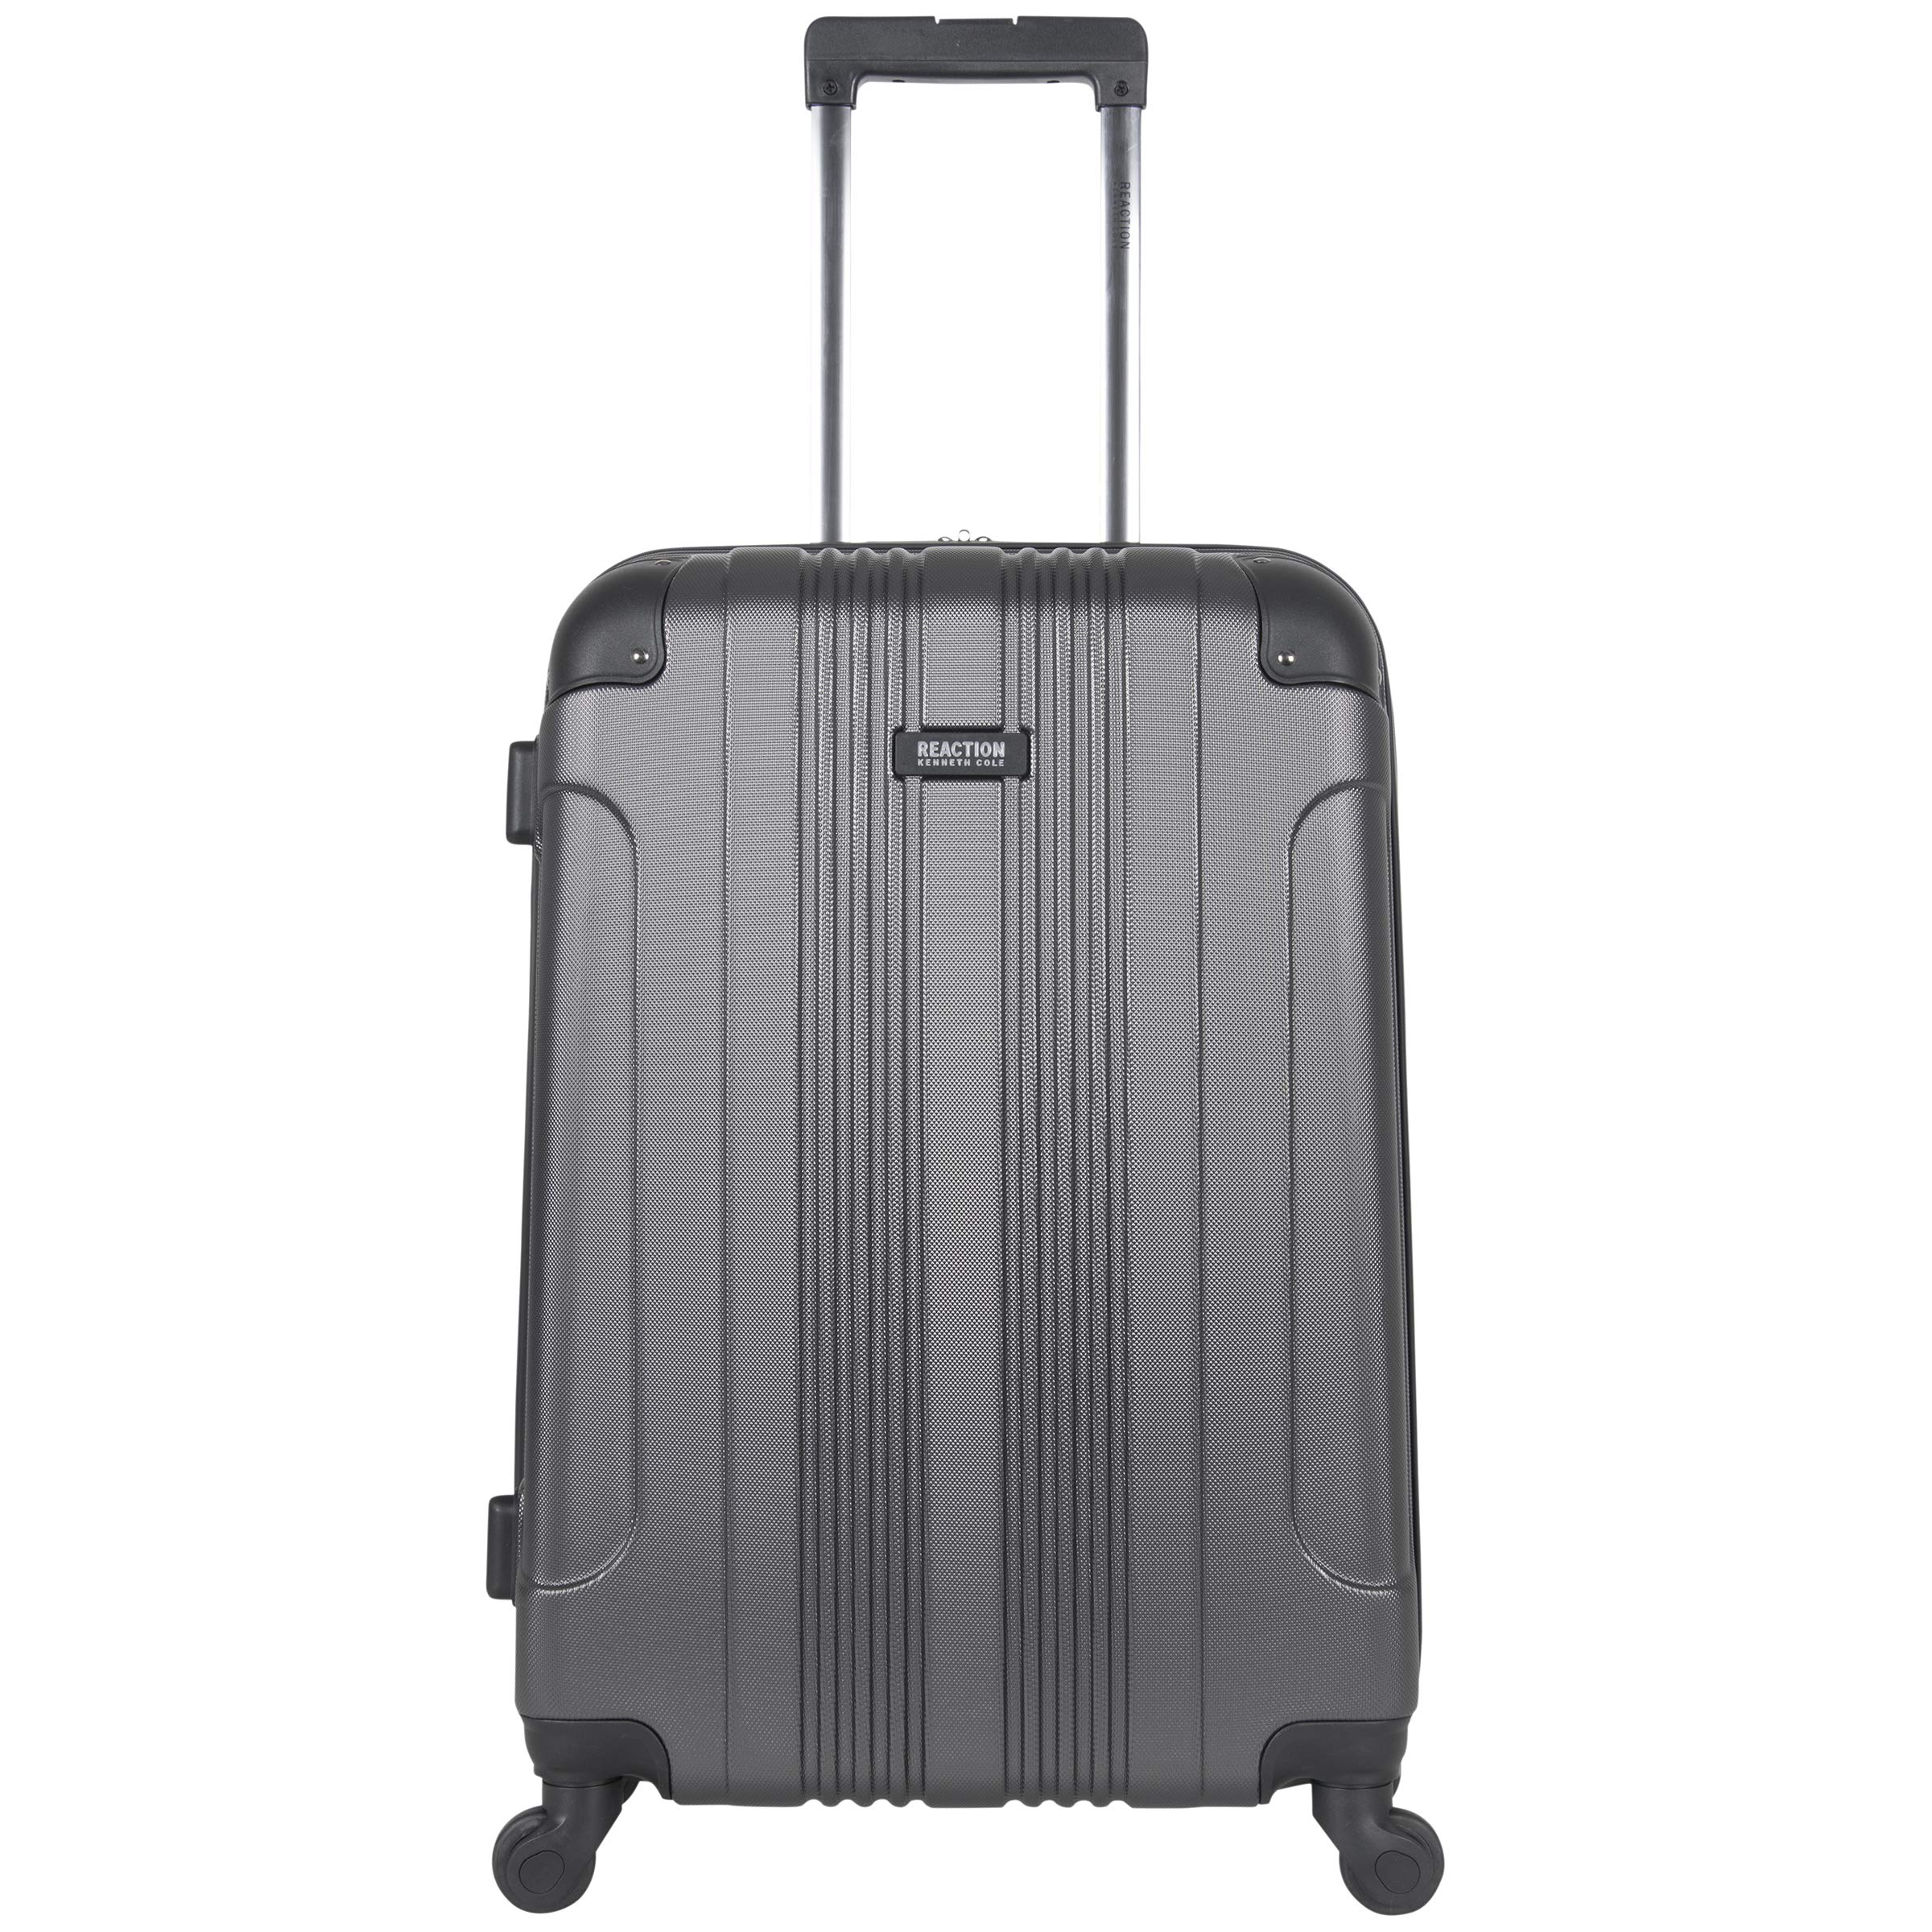 Kenneth Cole Reaction Out Of Bounds 24'' Hardside 4-Wheel Spinner Lightweight Checked Luggage, Charcoal